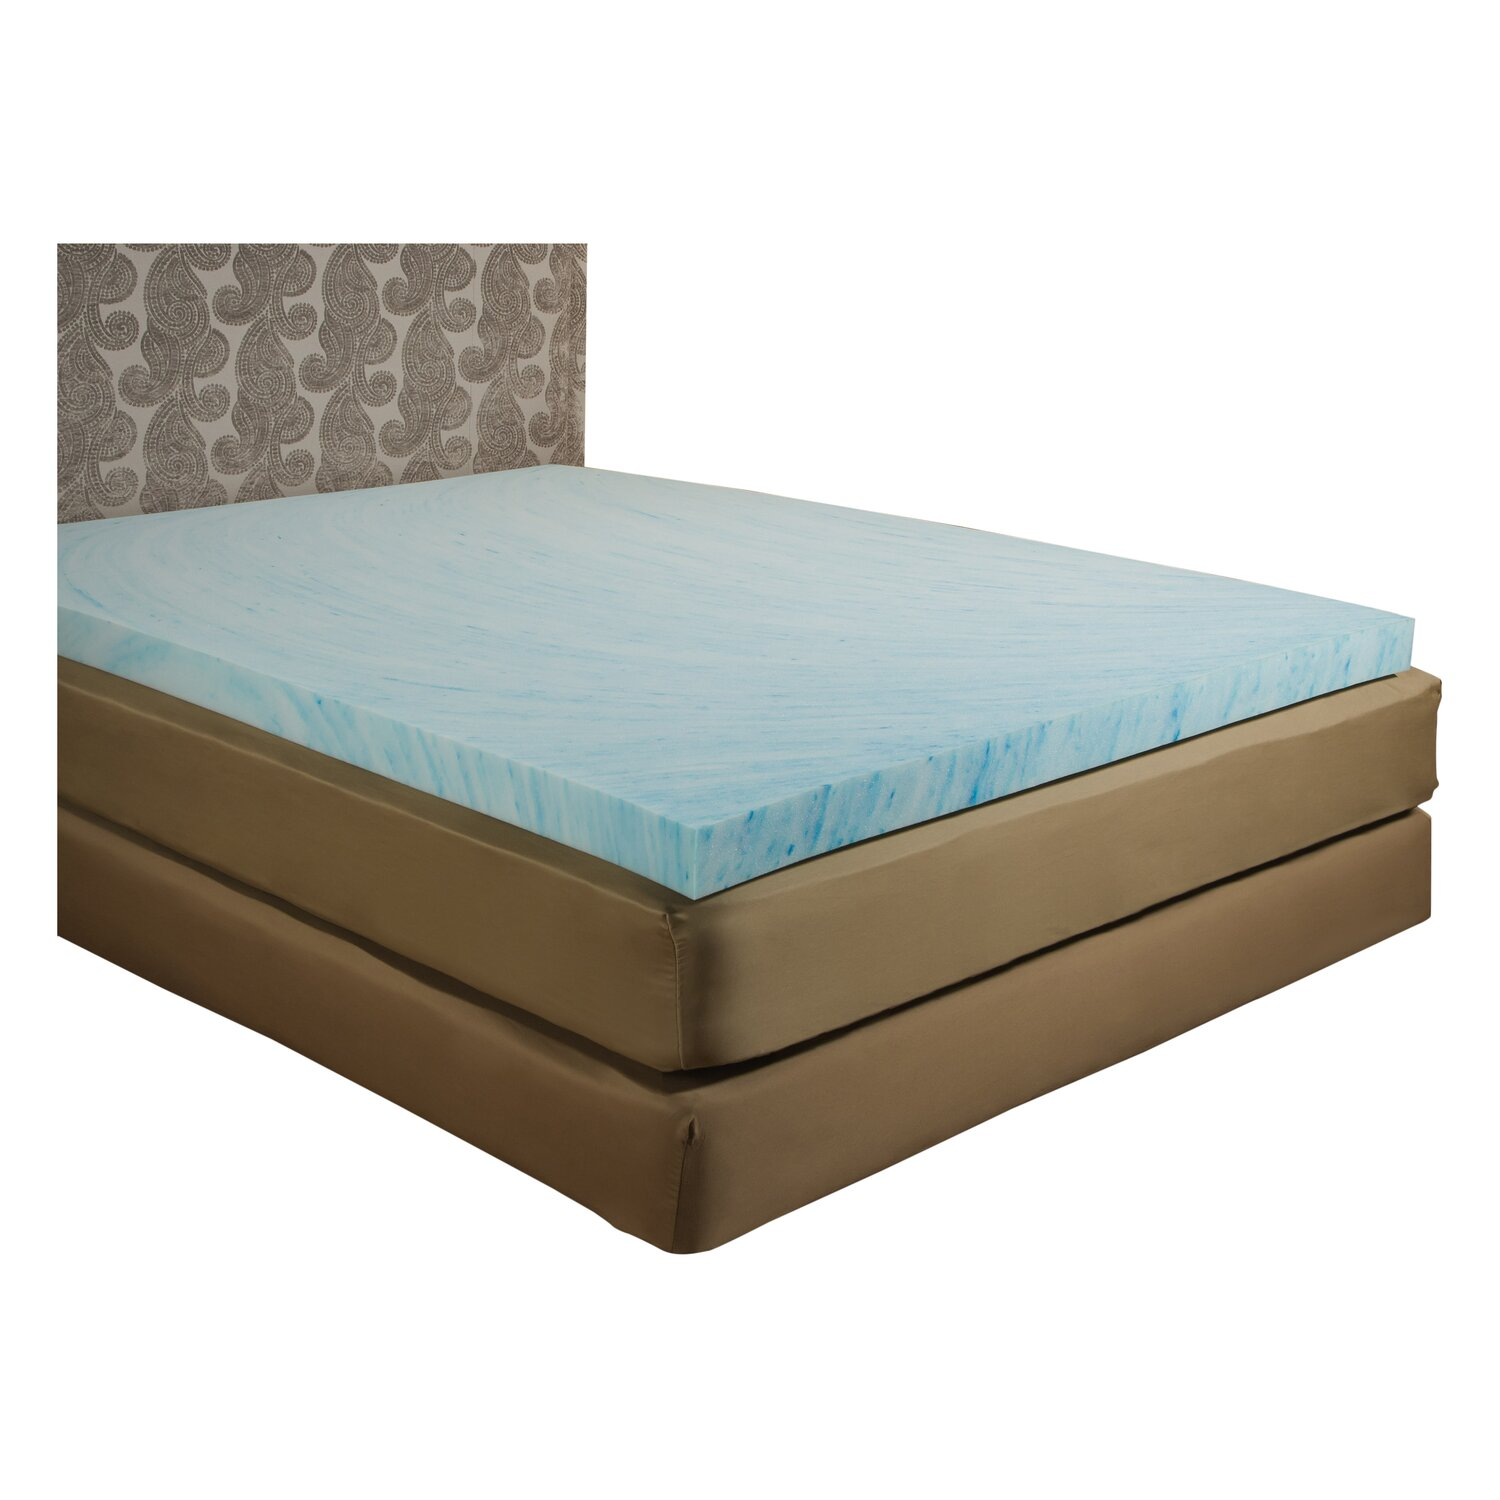 Compare Prices For Coaster 1005Q Contemporary Mattress, White